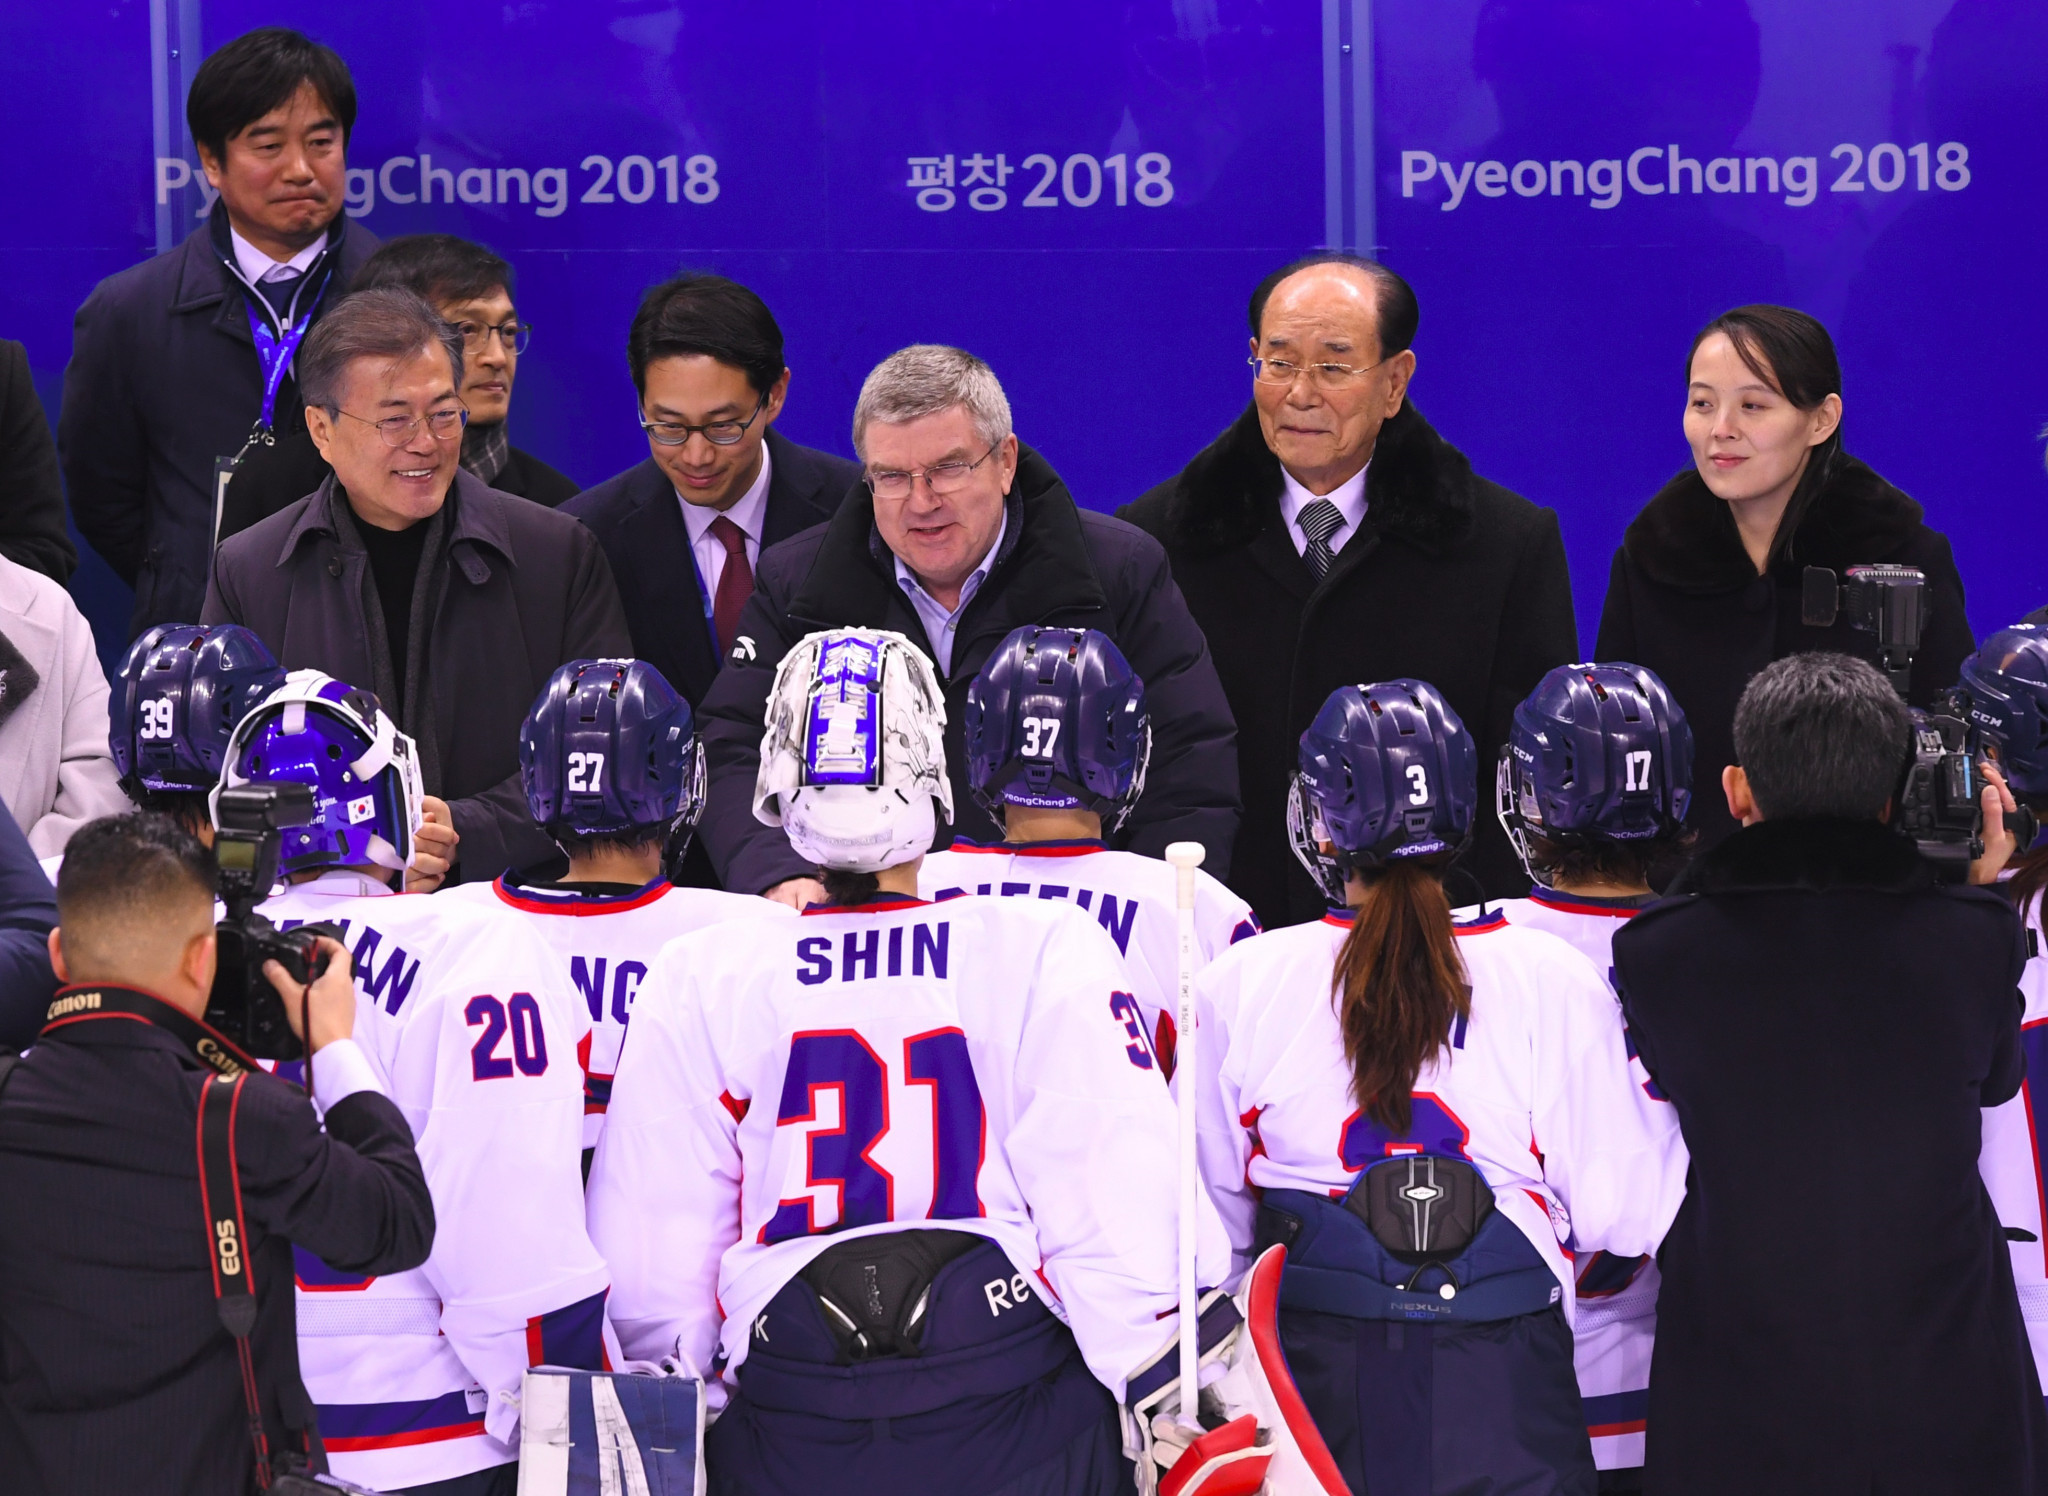 IOC President Thomas Bach addresses the unified Korean ice hockey team at Pyeongchang 2018